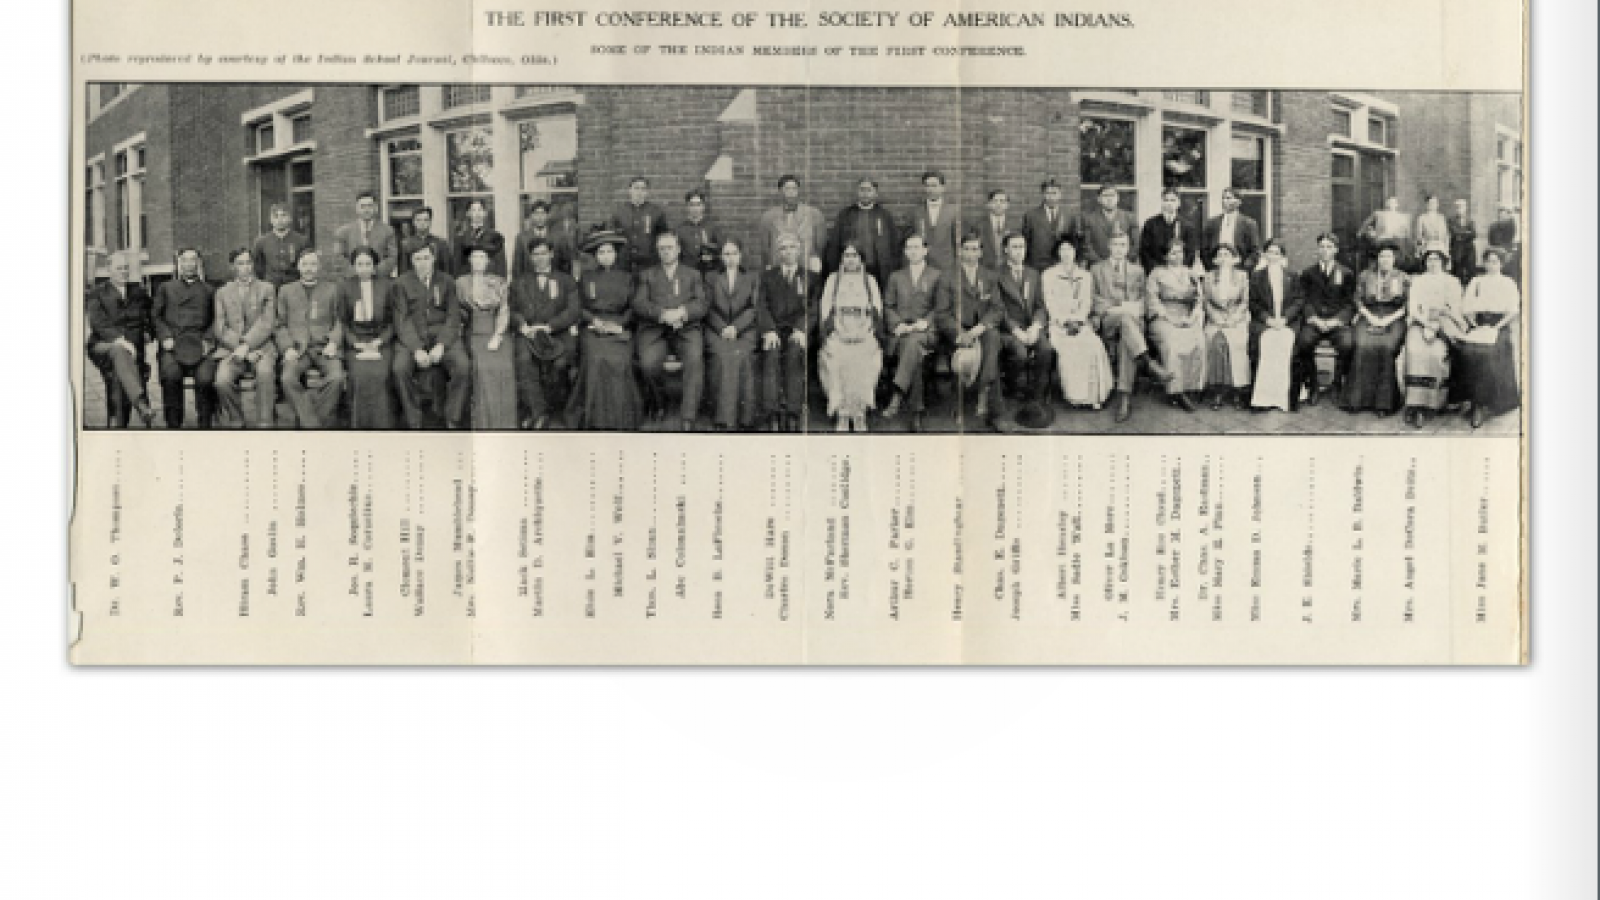 Society of American Indians Conference, Image 14